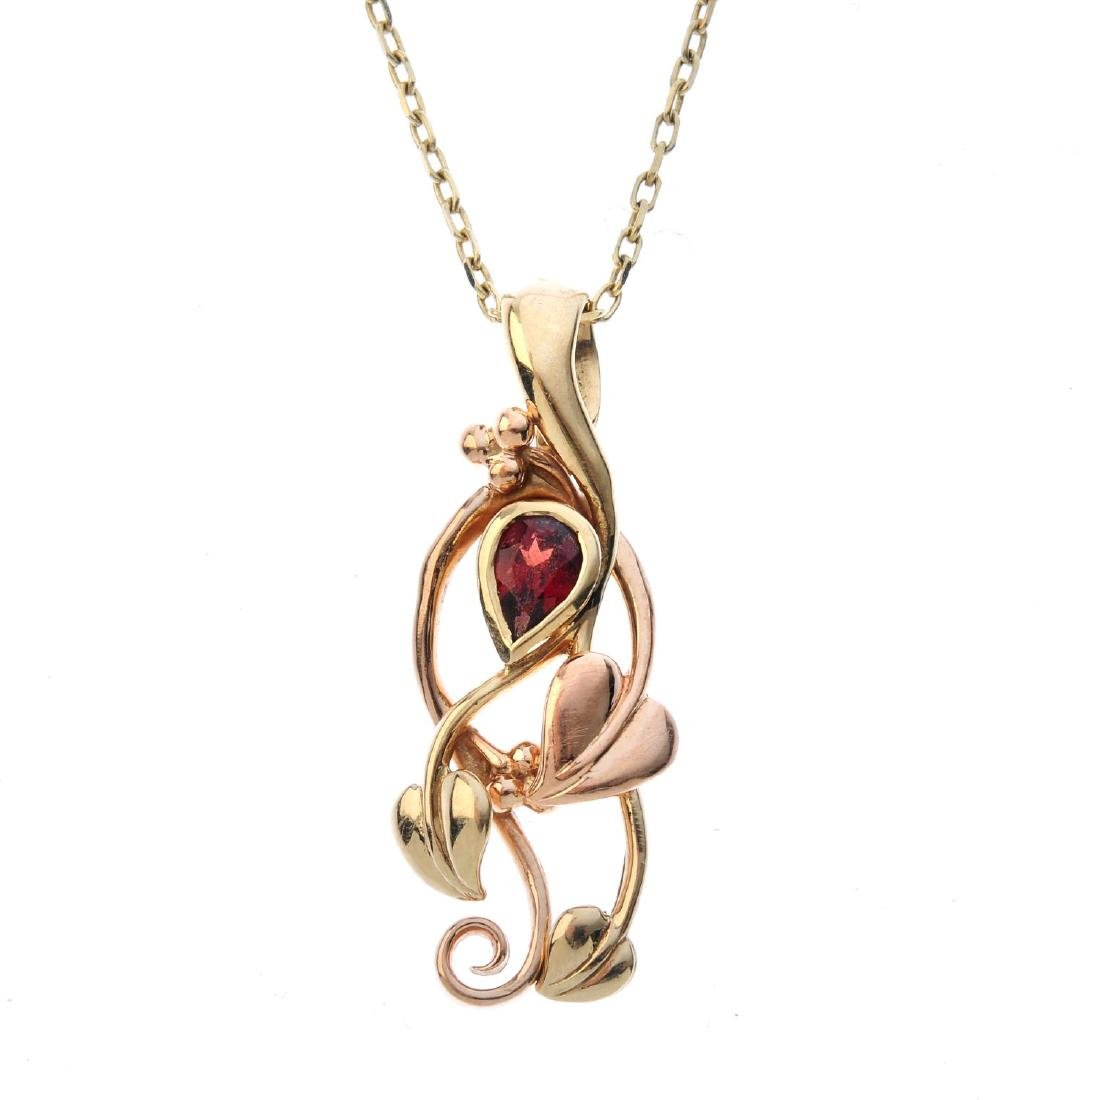 CLOGAU - a 9ct gold garnet pendant. Of bi-colour